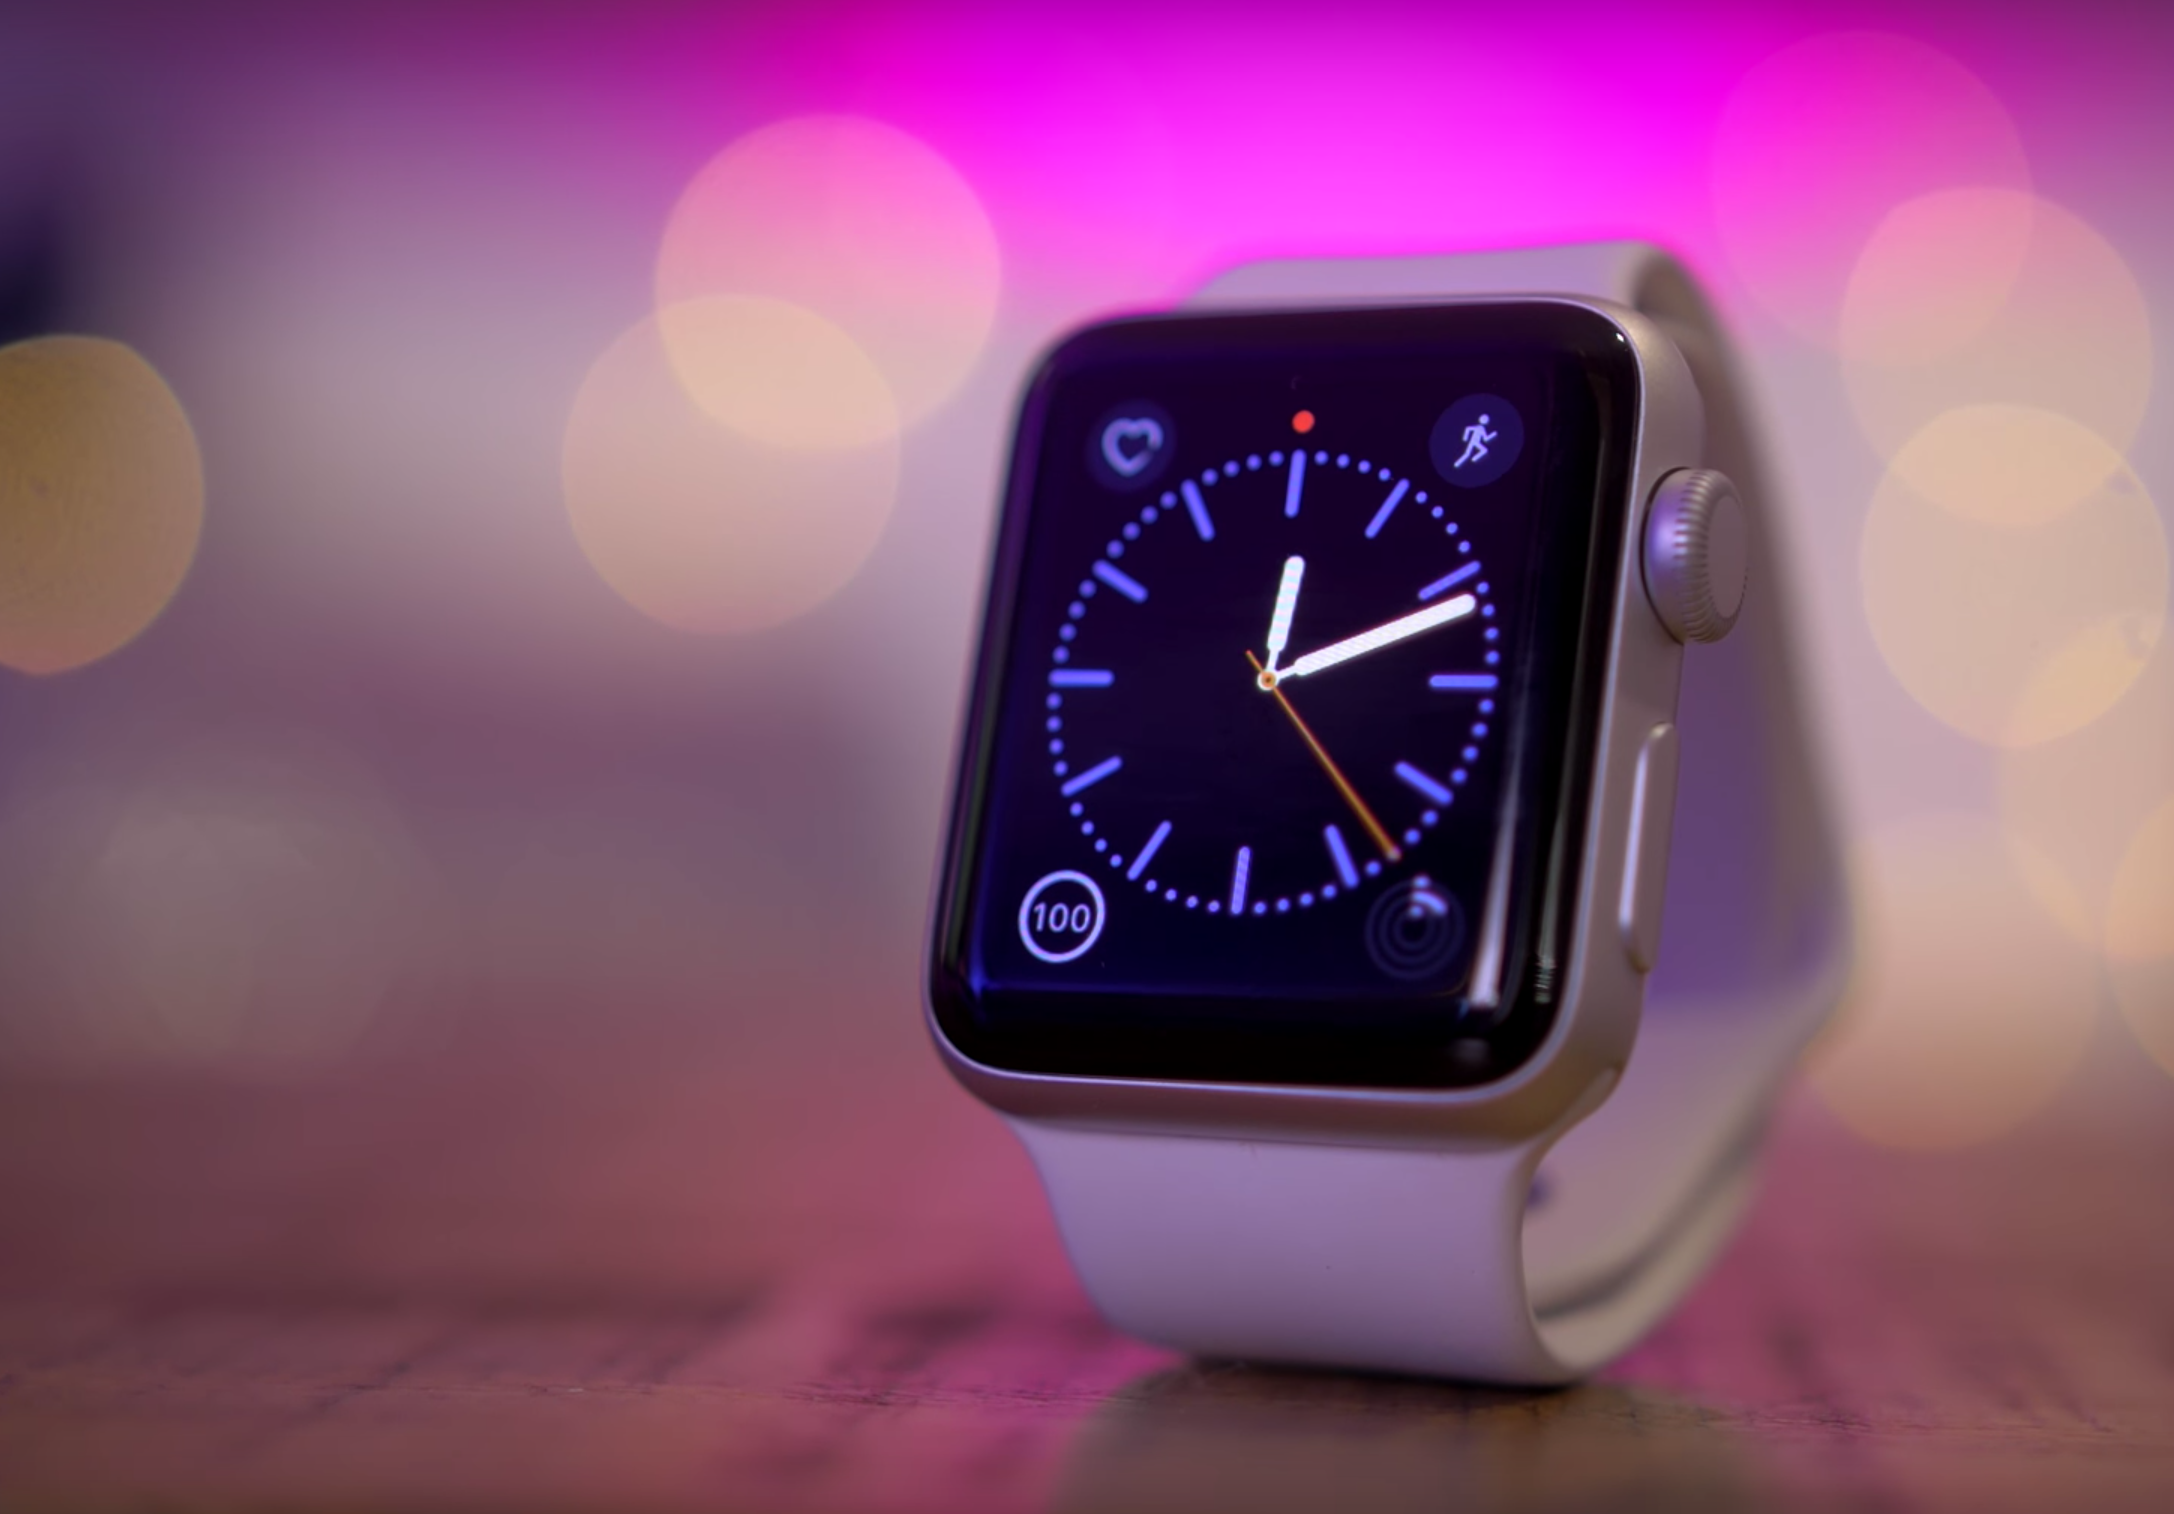 A picture of the Apple Watch 3